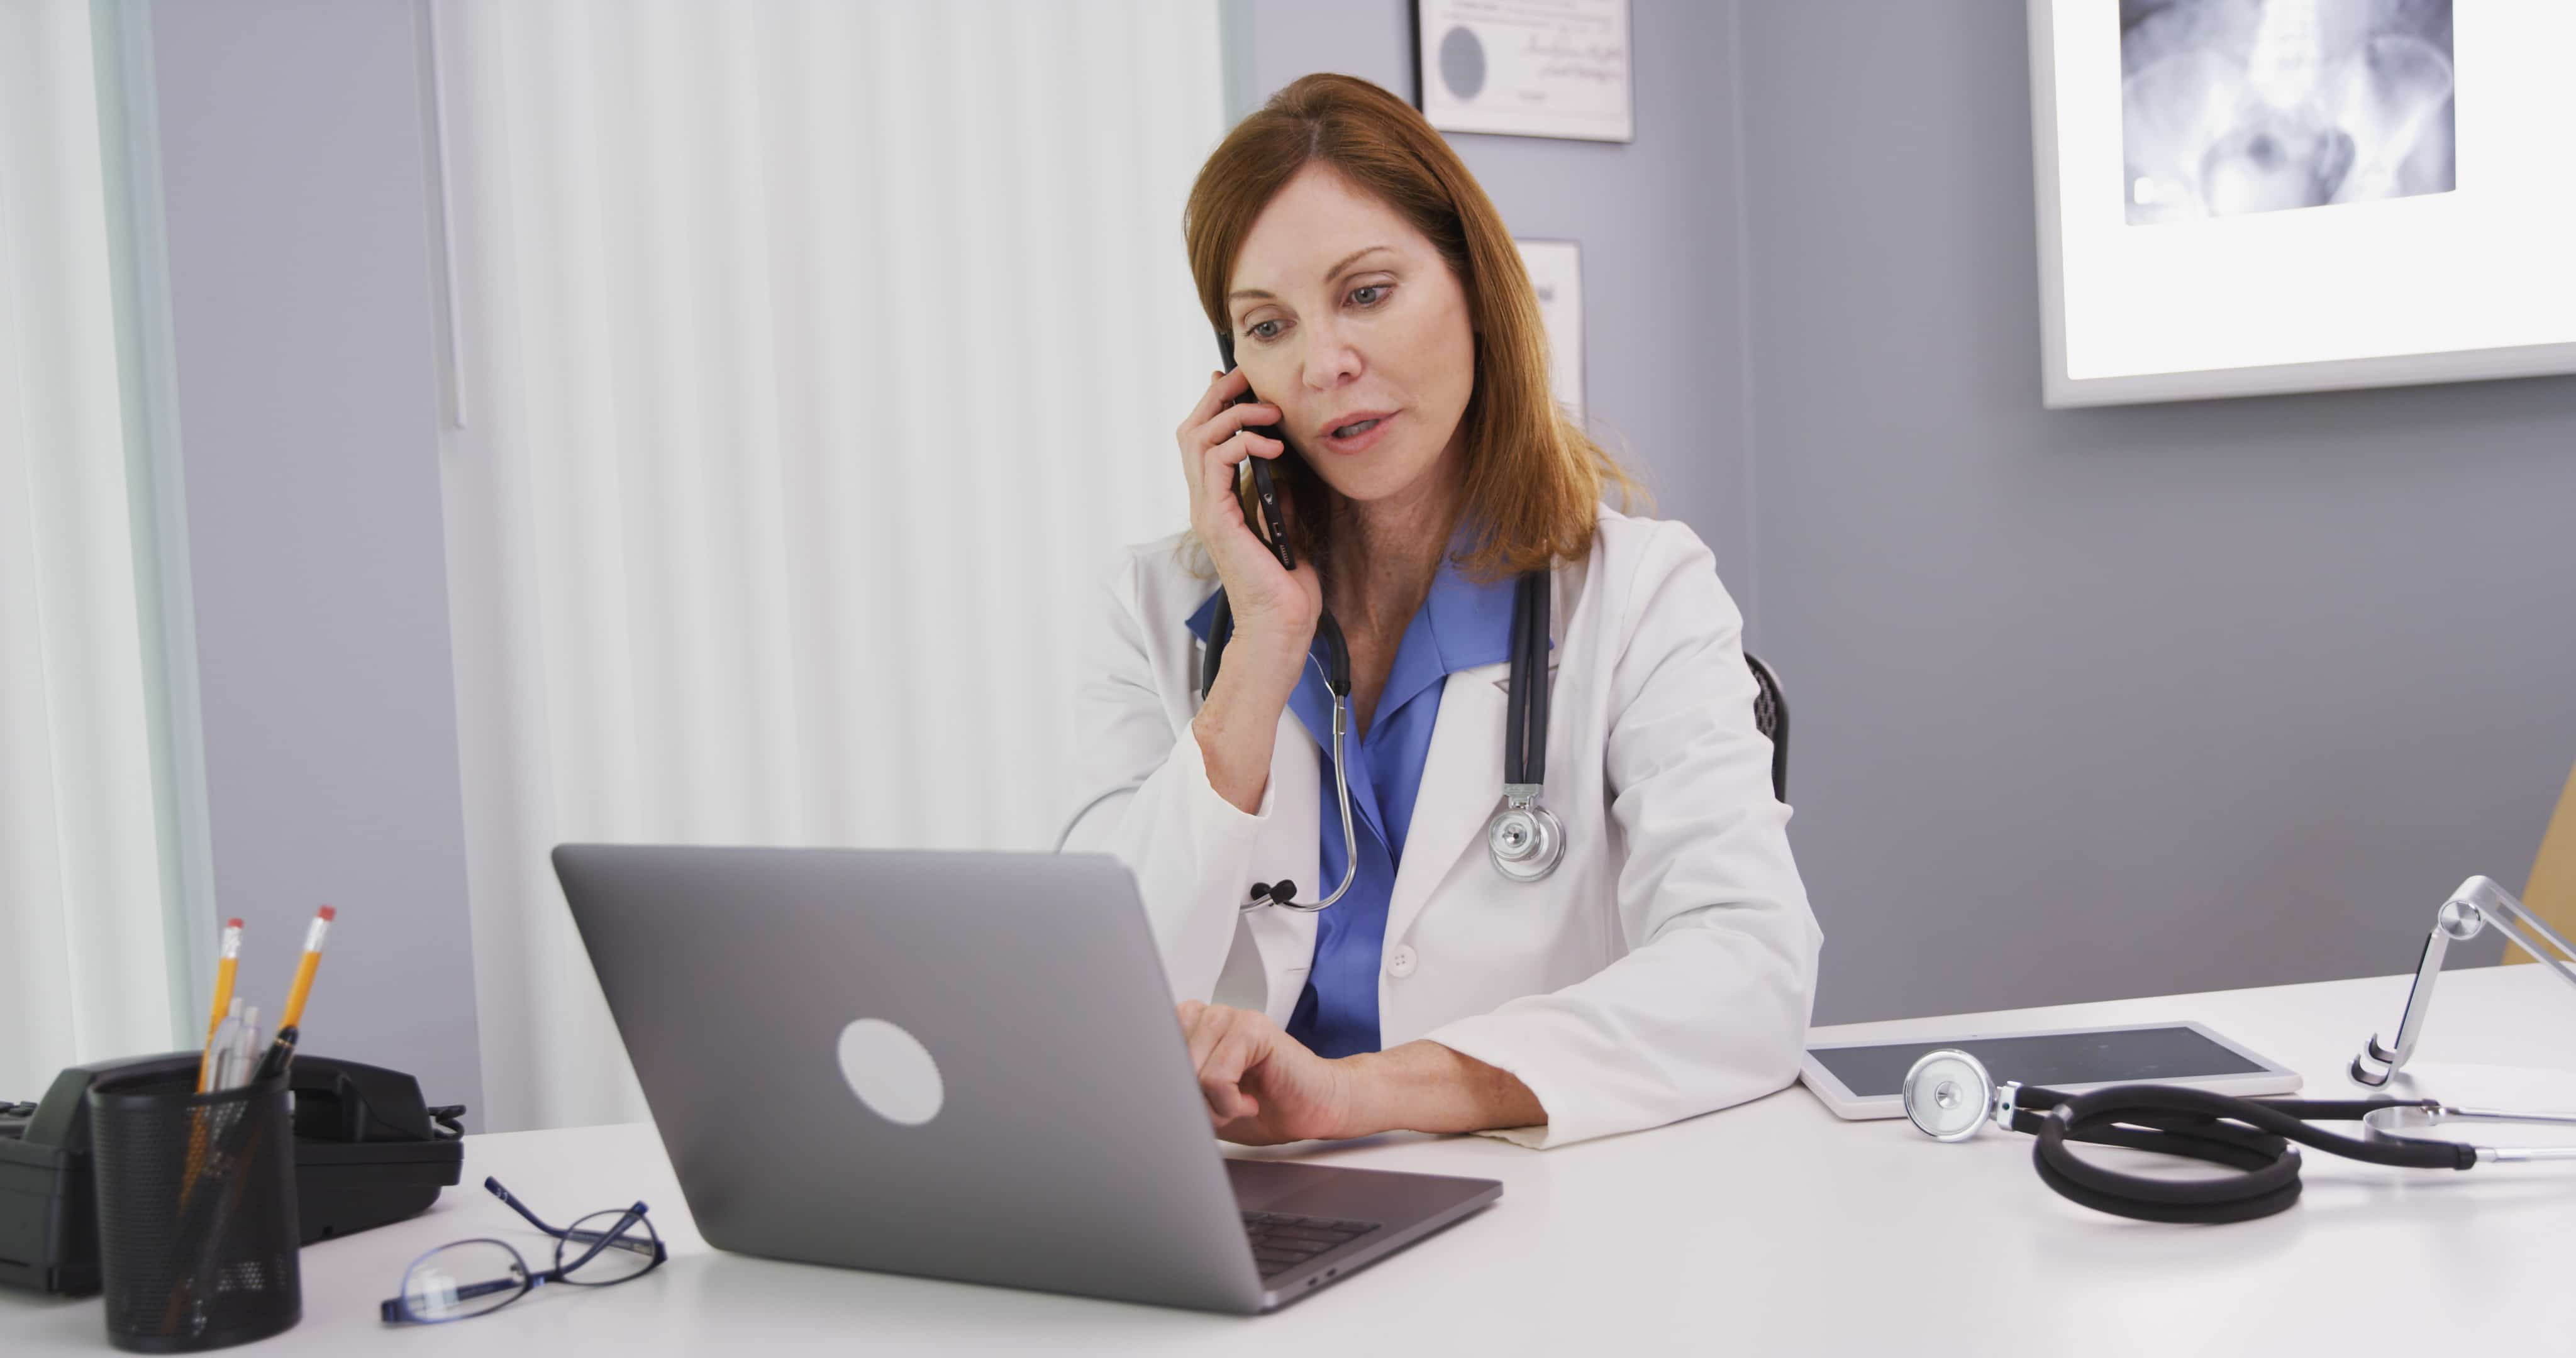 New Normal for over-the-phone medical interpretation and consultations